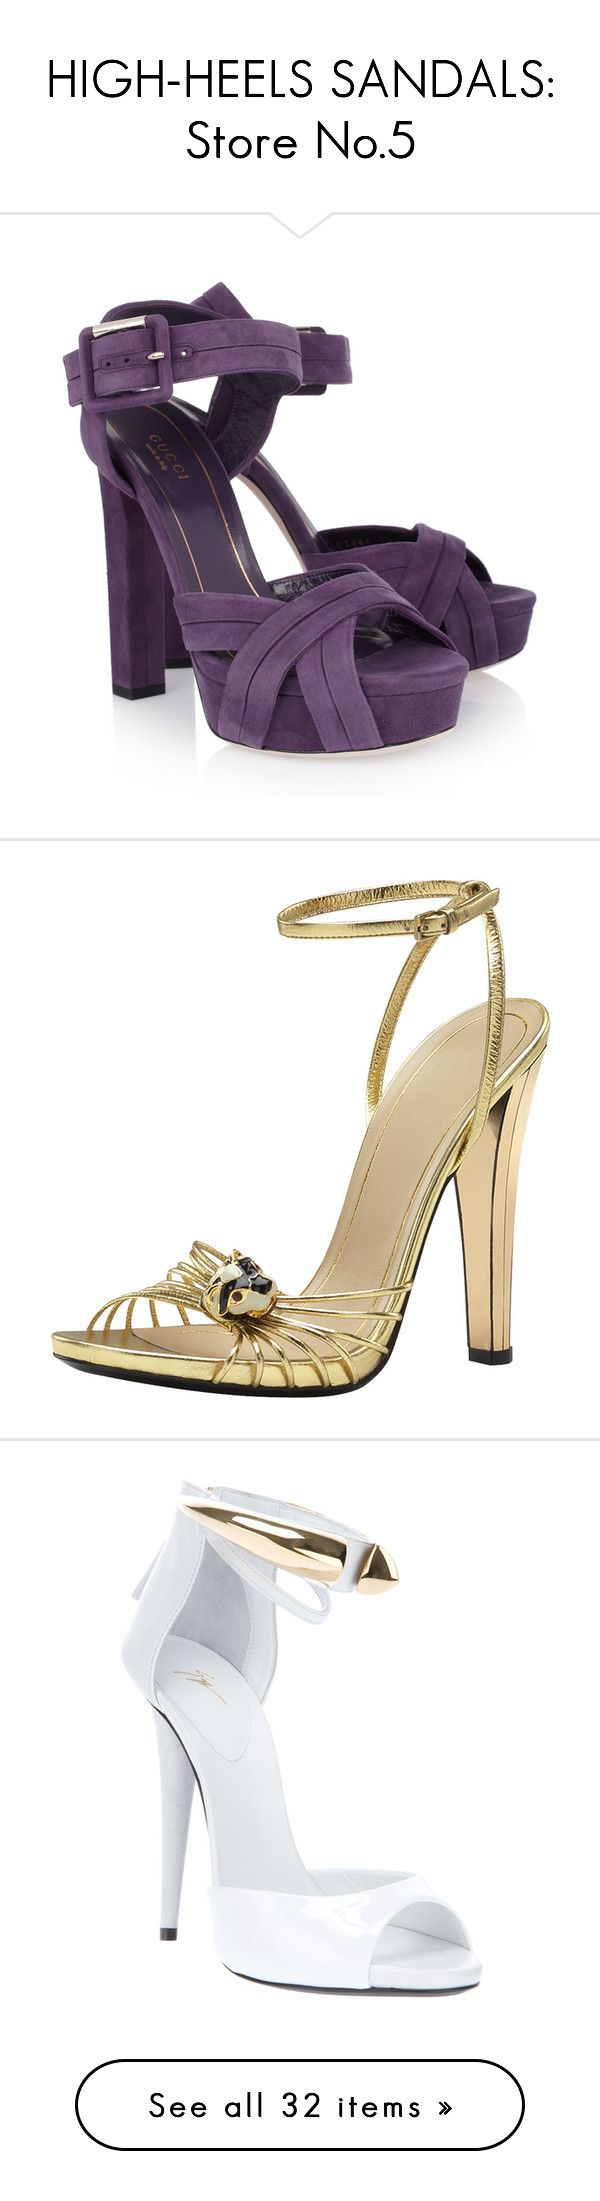 """""""HIGH-HEELS SANDALS: Store No.5"""" by eve-stardust on Polyvore featuring shoes, sandals, heels, gucci, purple, gucci sandals, strappy platform sandals, strappy high heel sandals, heeled sandals and purple sandals"""